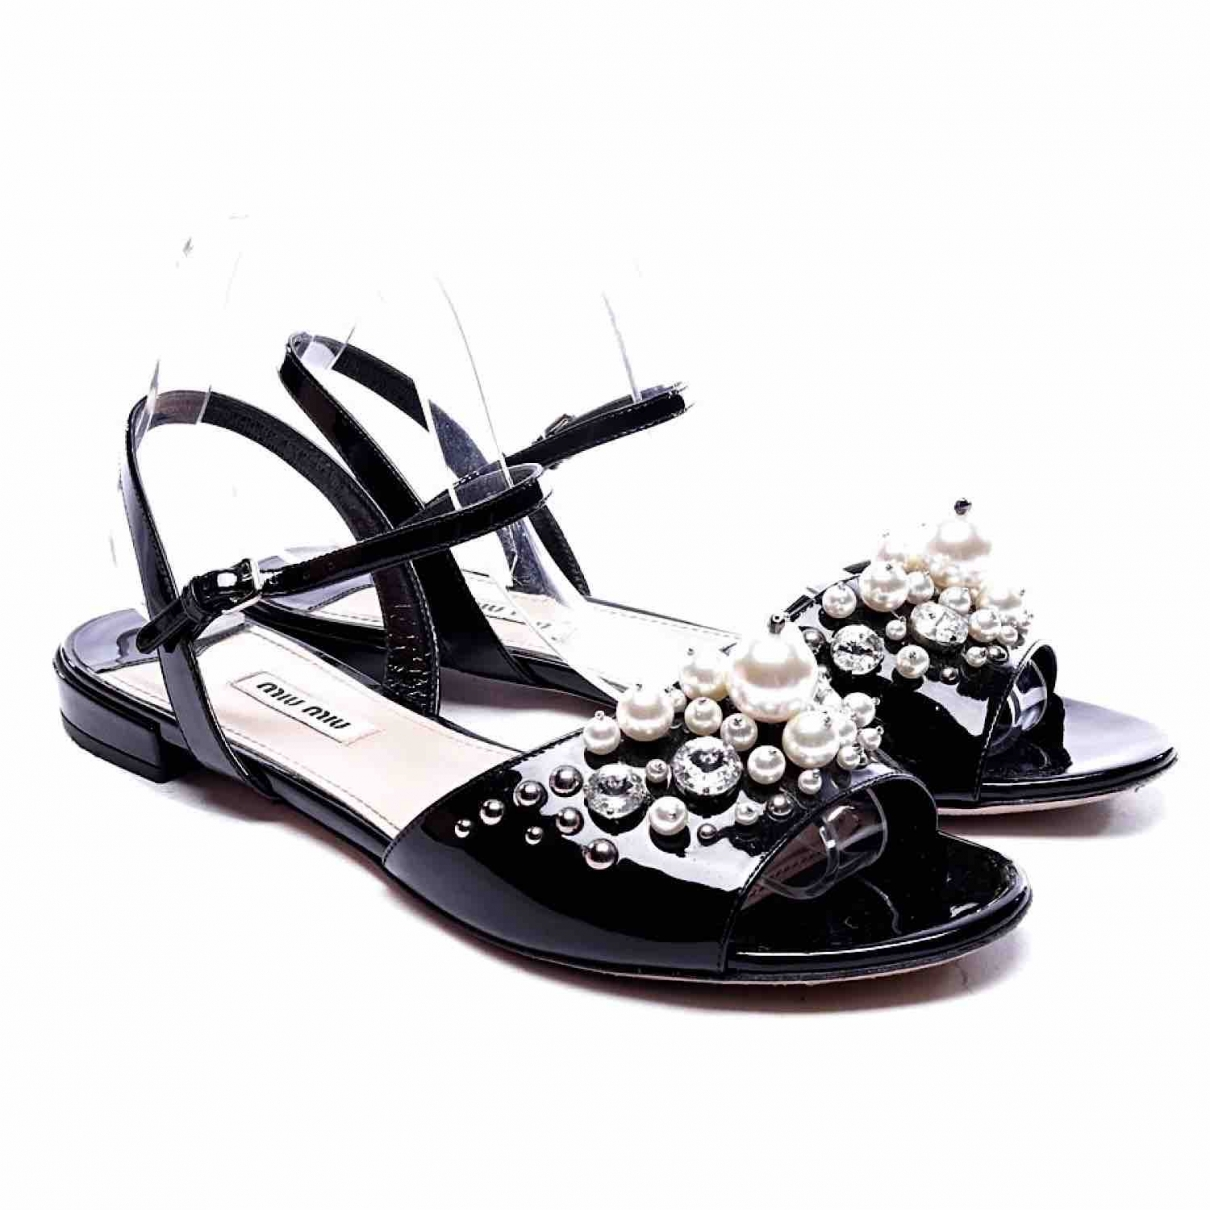 Miu Miu \N Black Leather Sandals for Women 40 EU